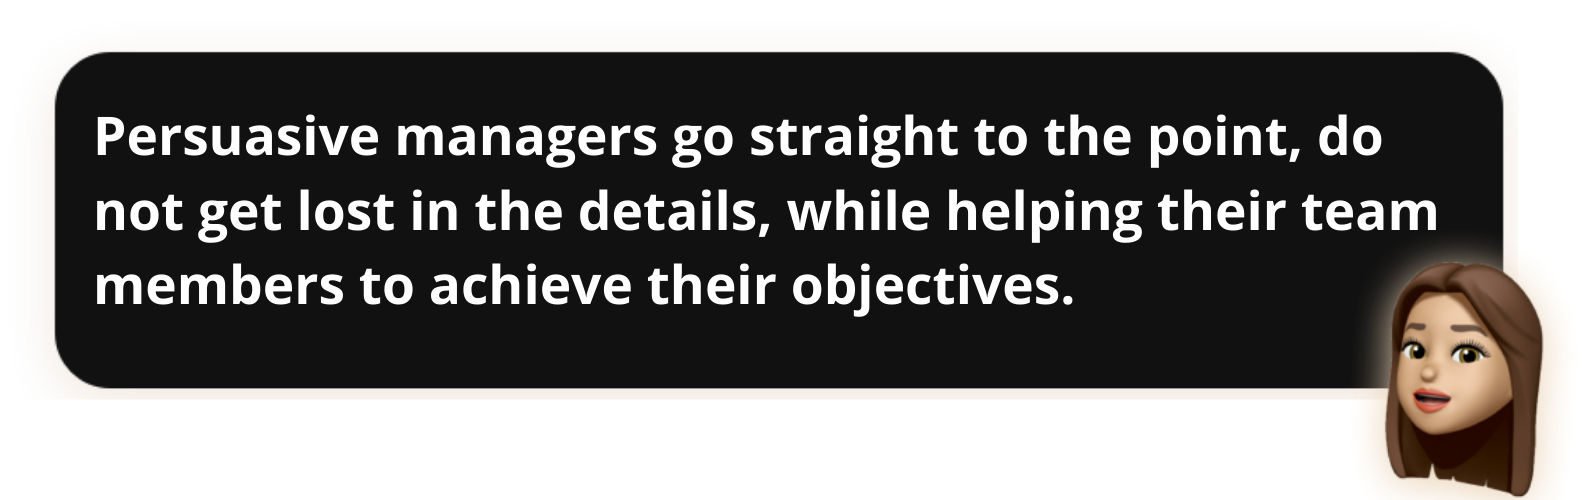 Persuasive managers go straight to the point, do not get lost in the details, while helping their team members to achieve their objectives - Popwork